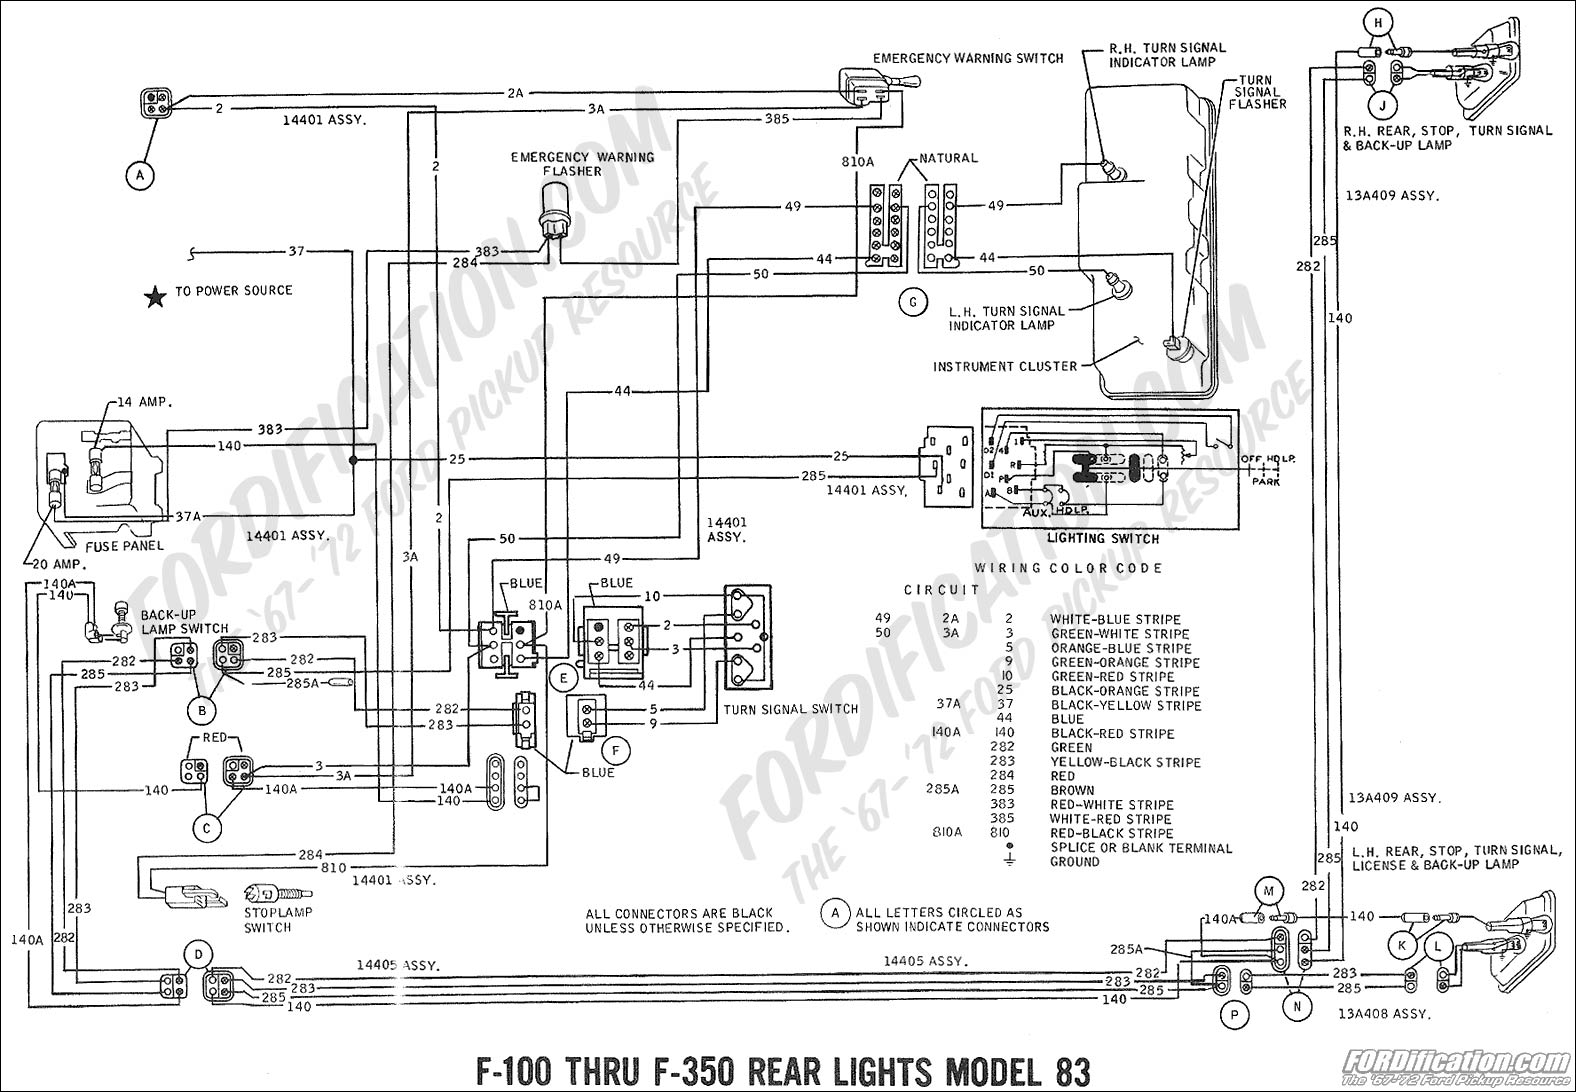 Hazard Light Wiring Diagram 2002 F150 Diy Enthusiasts 2004 Ford F 150 Radio Aux Truck Technical Drawings And Schematics Section H Rh Fordification Com 2001